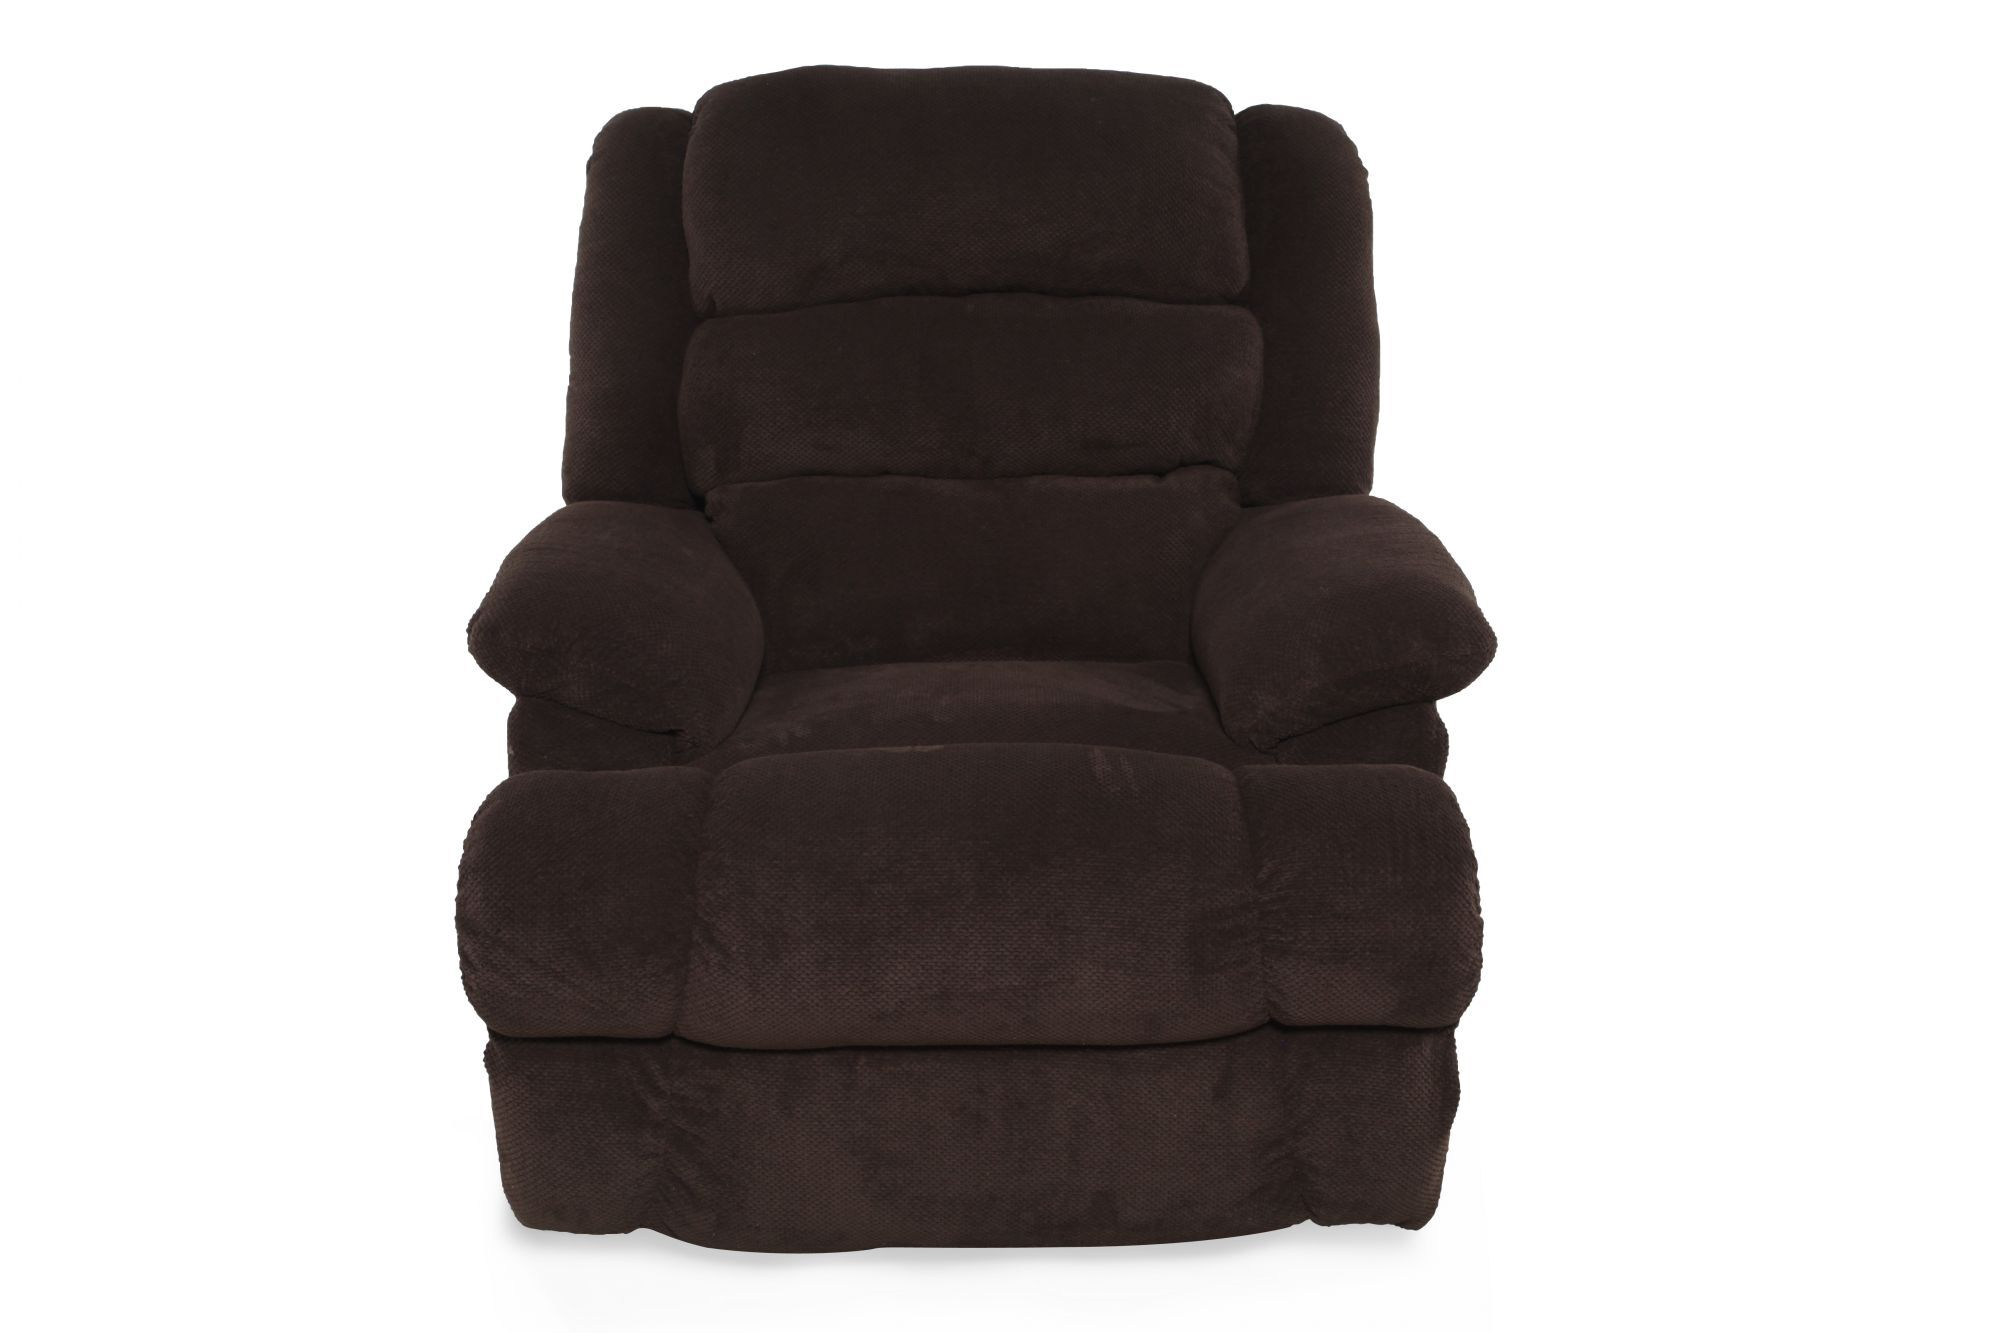 Lane Knox Chocolate Comfort King Wall Saver Recliner ...  sc 1 st  Mathis Brothers & Recliners - Reclining Chairs u0026 Sofas | Mathis Brothers islam-shia.org